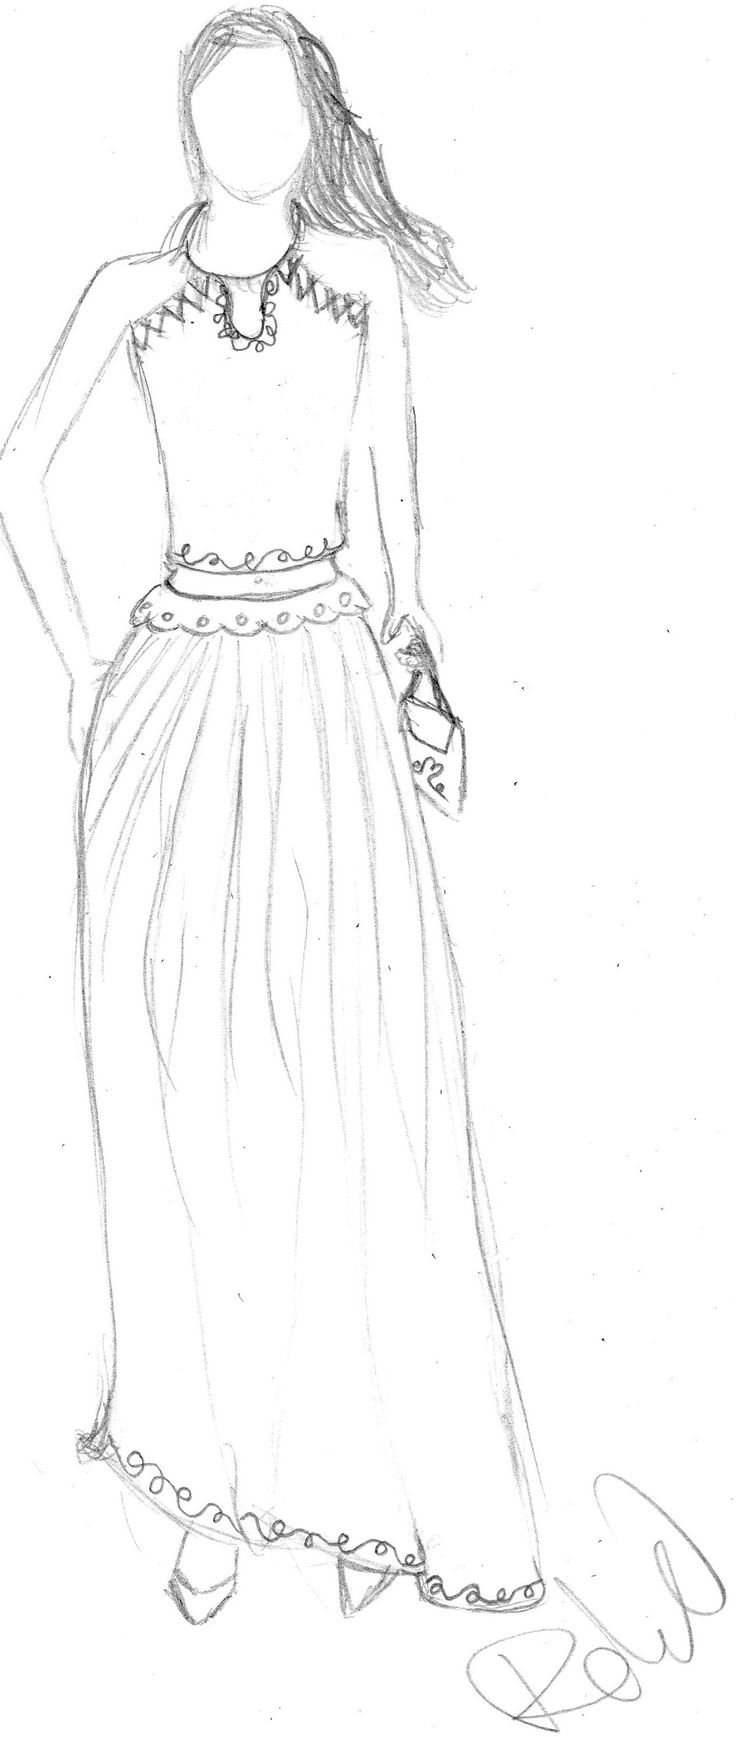 my draw! :)  Hungarian dress and top :)  the top is would be black. And the long skirt is got a light color :) https://www.facebook.com/Youtubos/